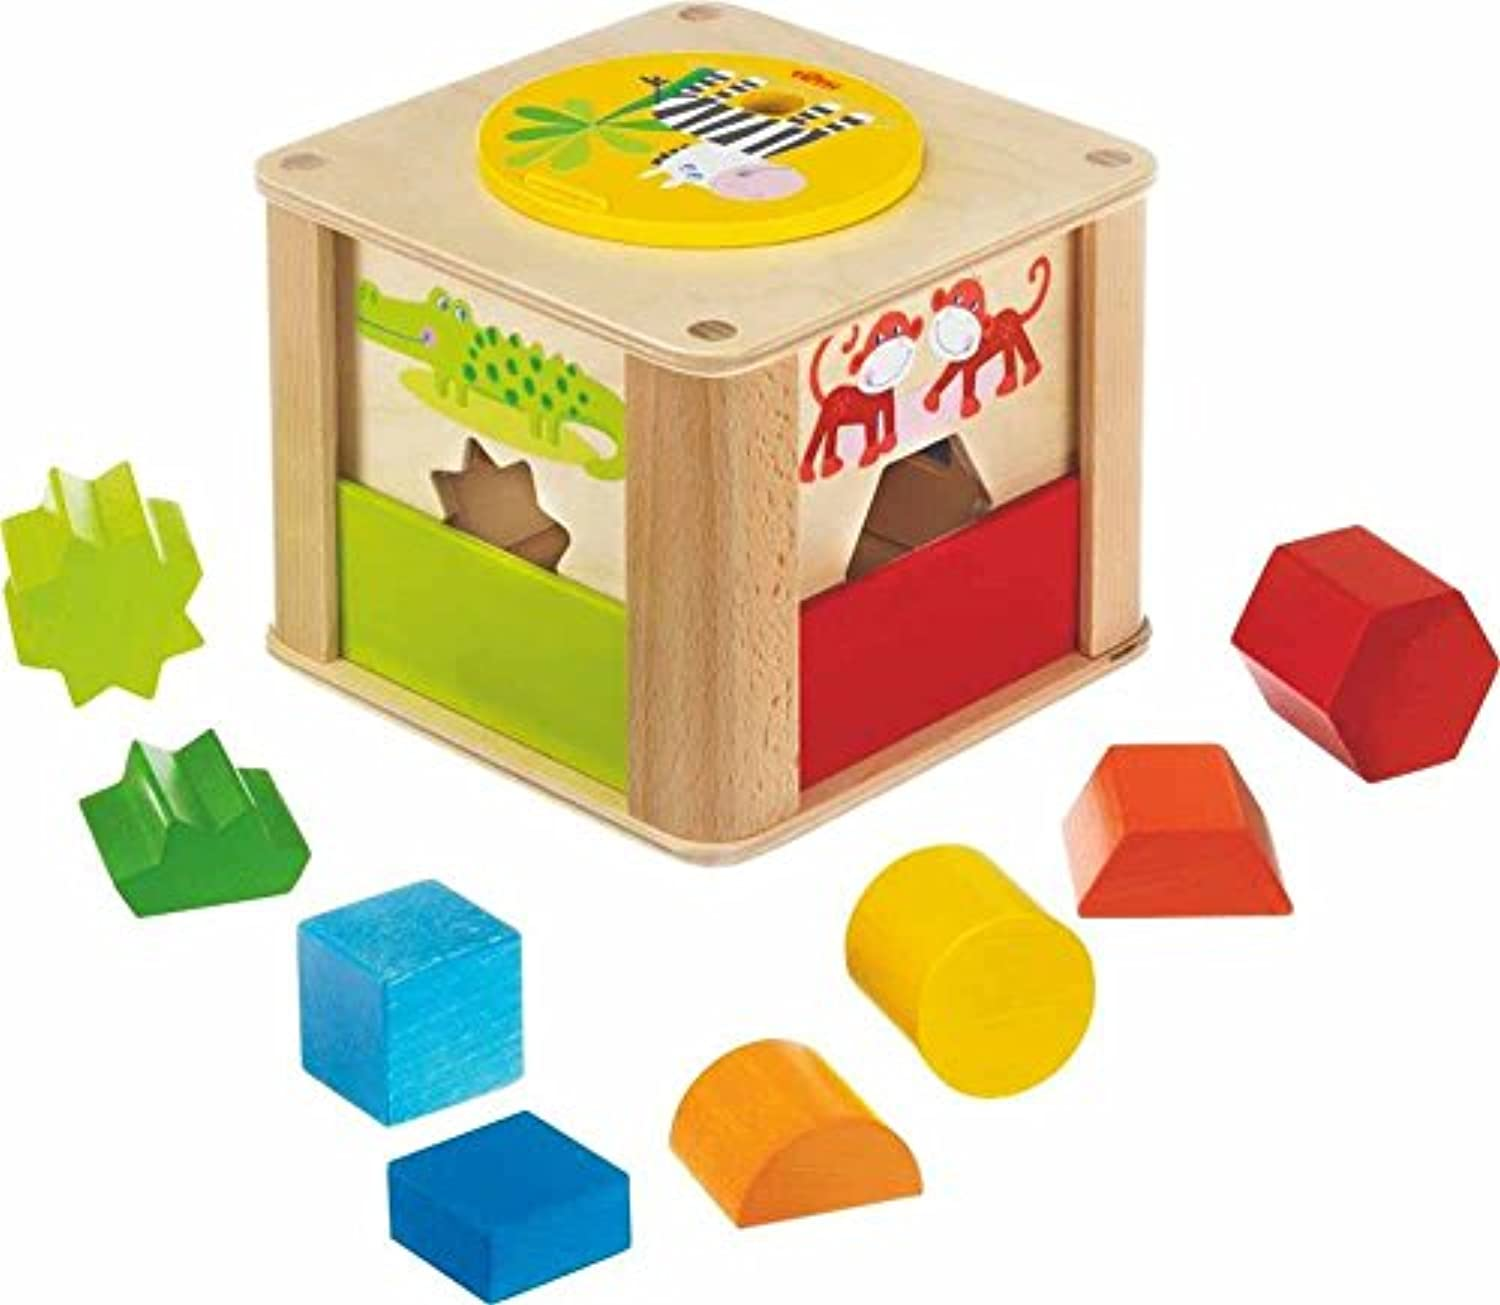 Haba Zookeeper木製Shape Sorting Box with a Twist – Explore全体と半分Shapes – 12ヶ月+